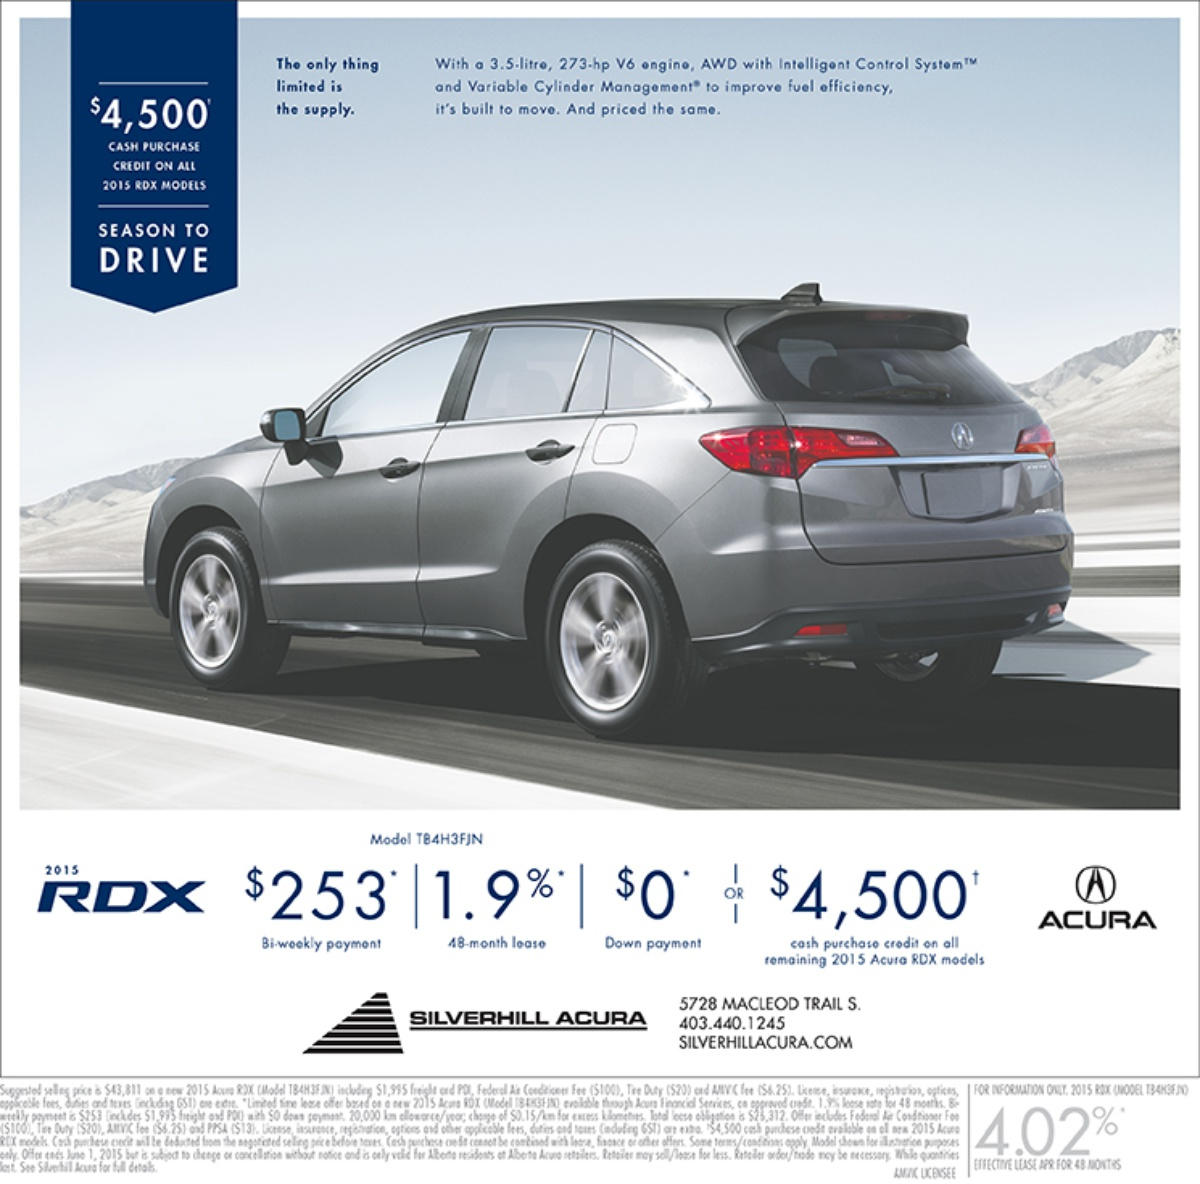 Preowned Acura Rdx: Current Vehicle Ads, Specials & Promotions In Calgary